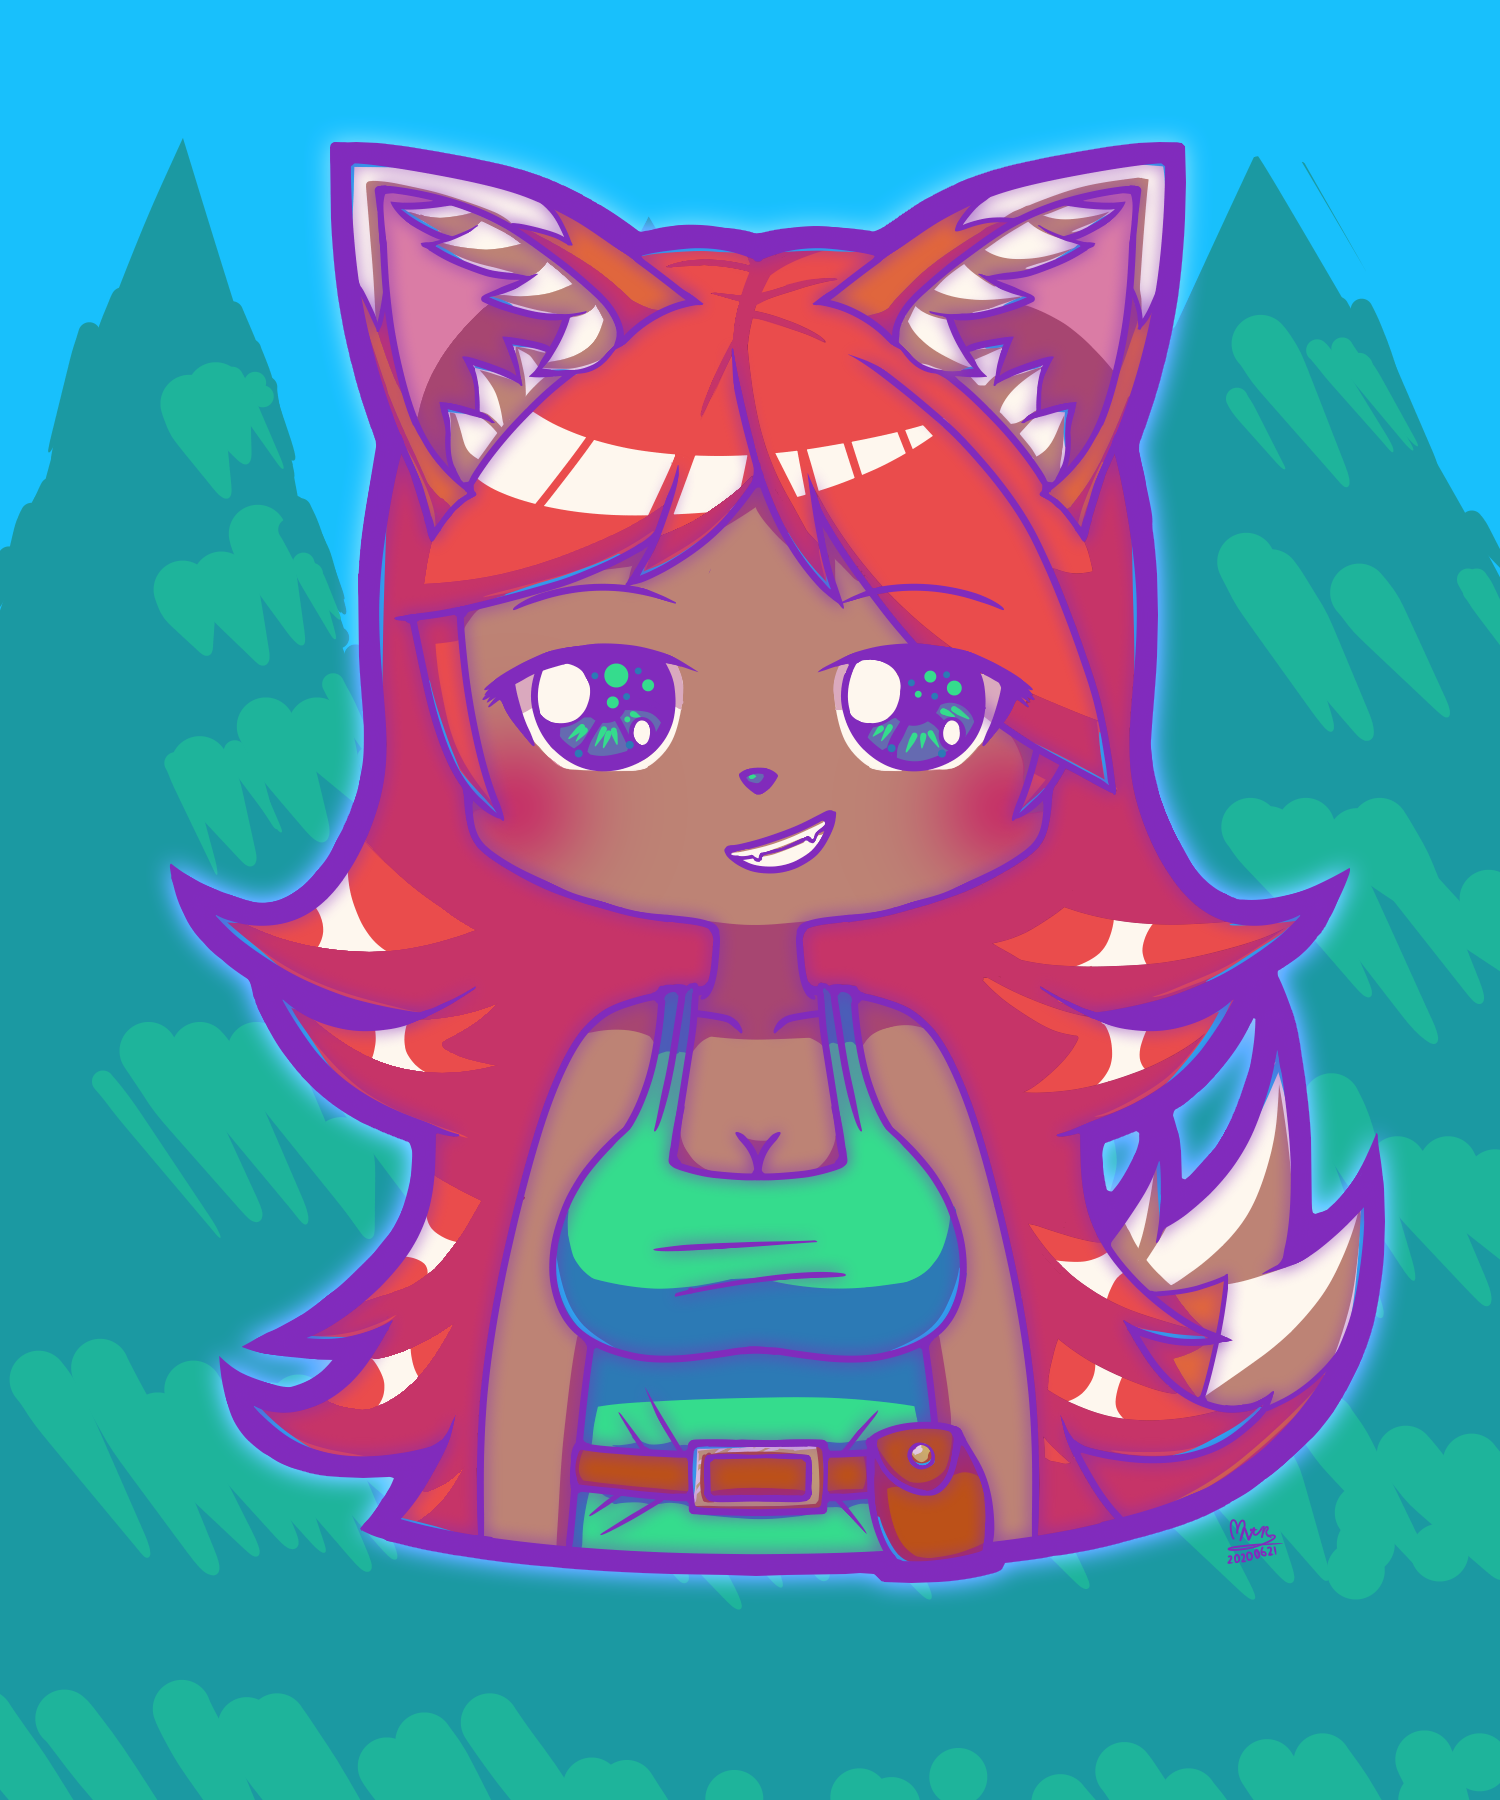 Chibi Terraria Zoologist - by NeithR - 20200621.png